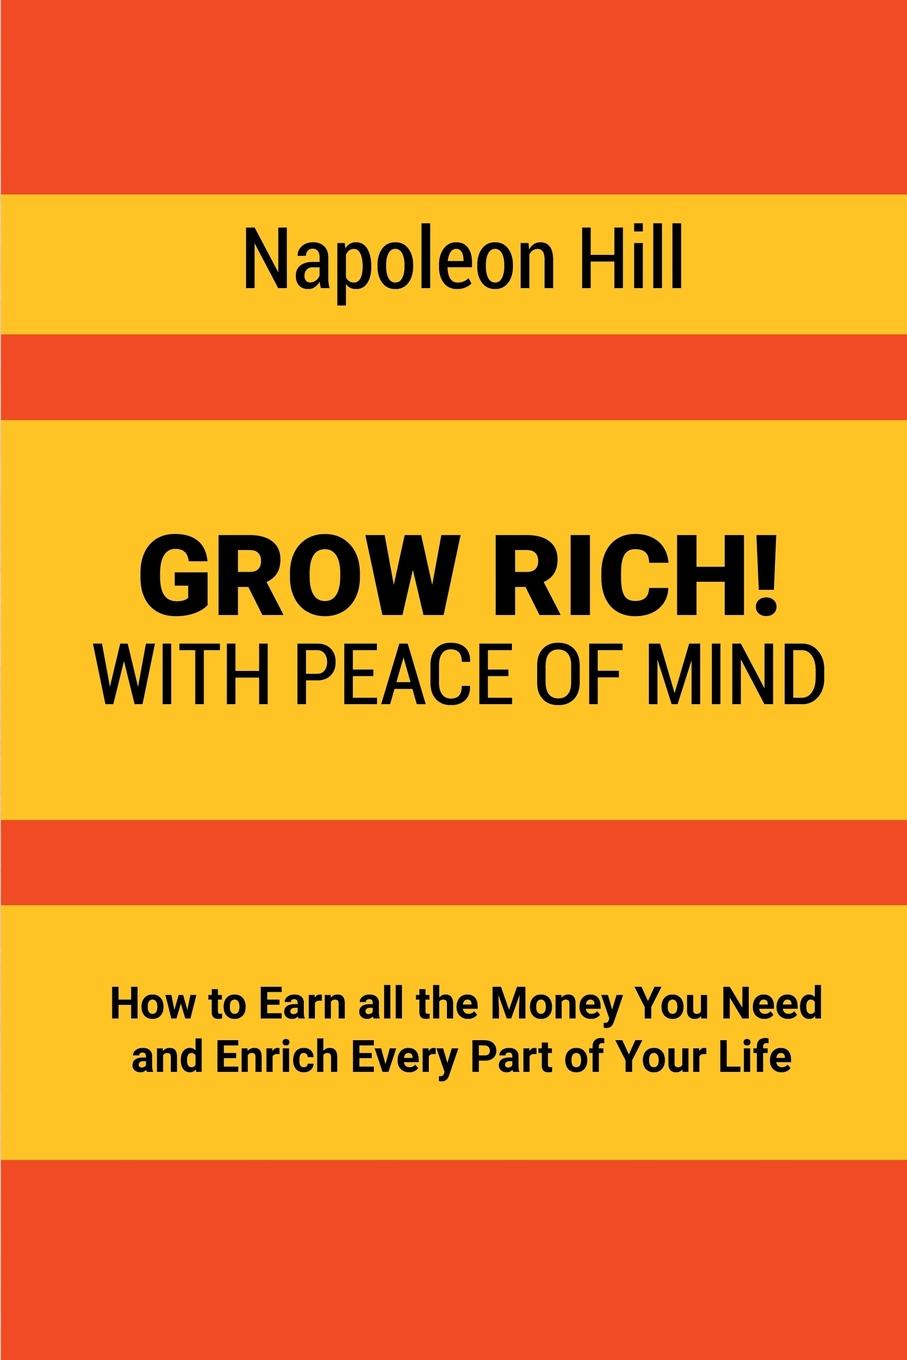 Napoleon Hill Grow Rich!. With Peace of Mind - How to Earn all the Money You Need and Enrich Every Part of Your Life fergus o connell earn more stress less how to attract wealth using the secret science of getting rich your practical guide to living the law of attraction